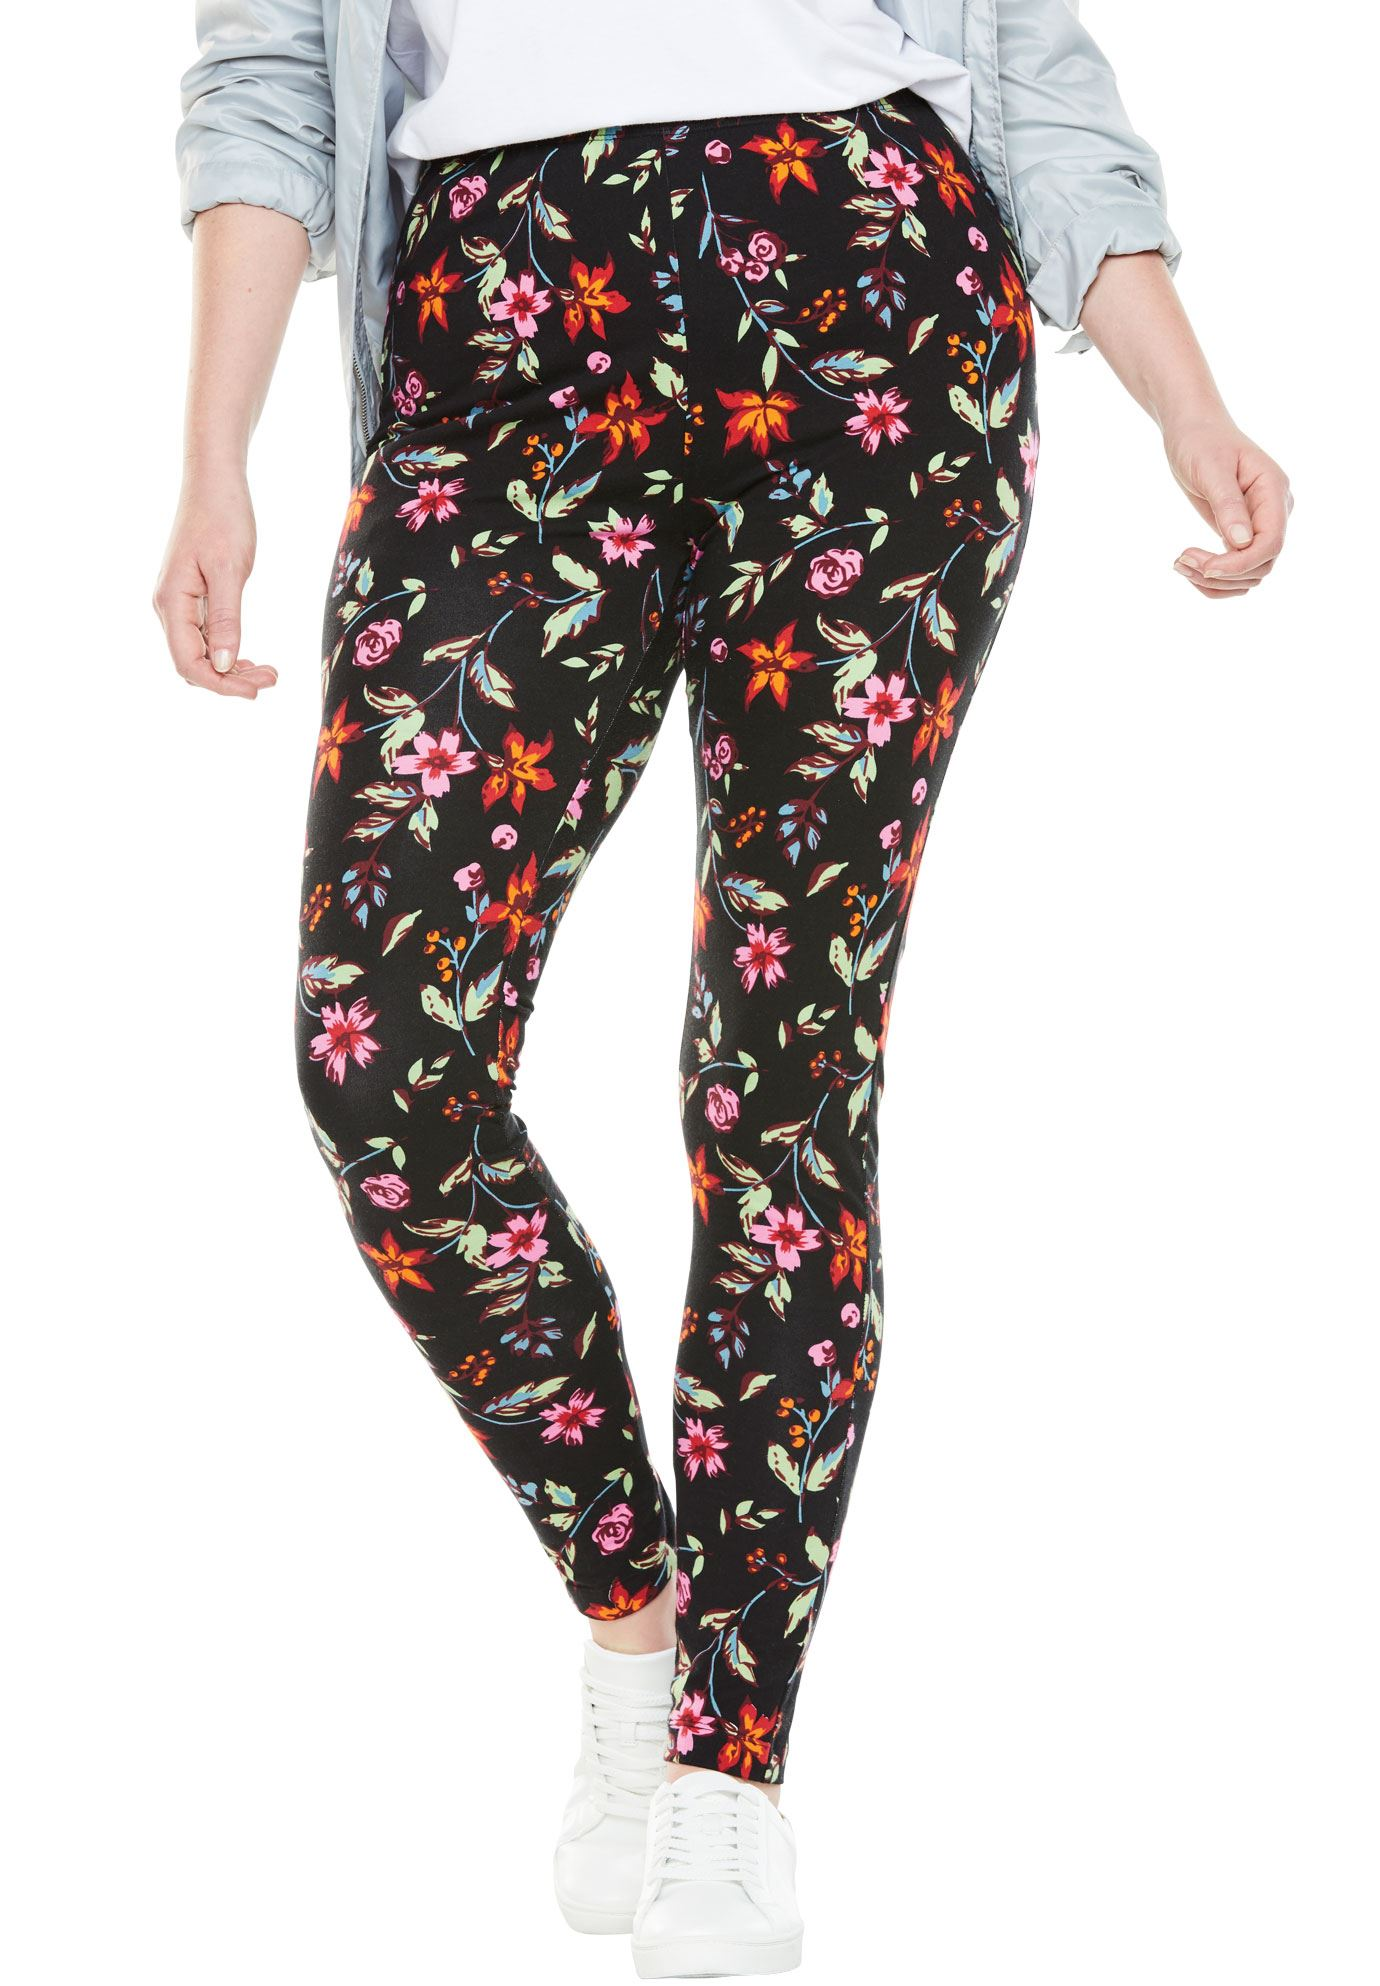 f3baa9bea90ca Woman Within - Plus Size Tall Stretch Cotton Printed Legging ...